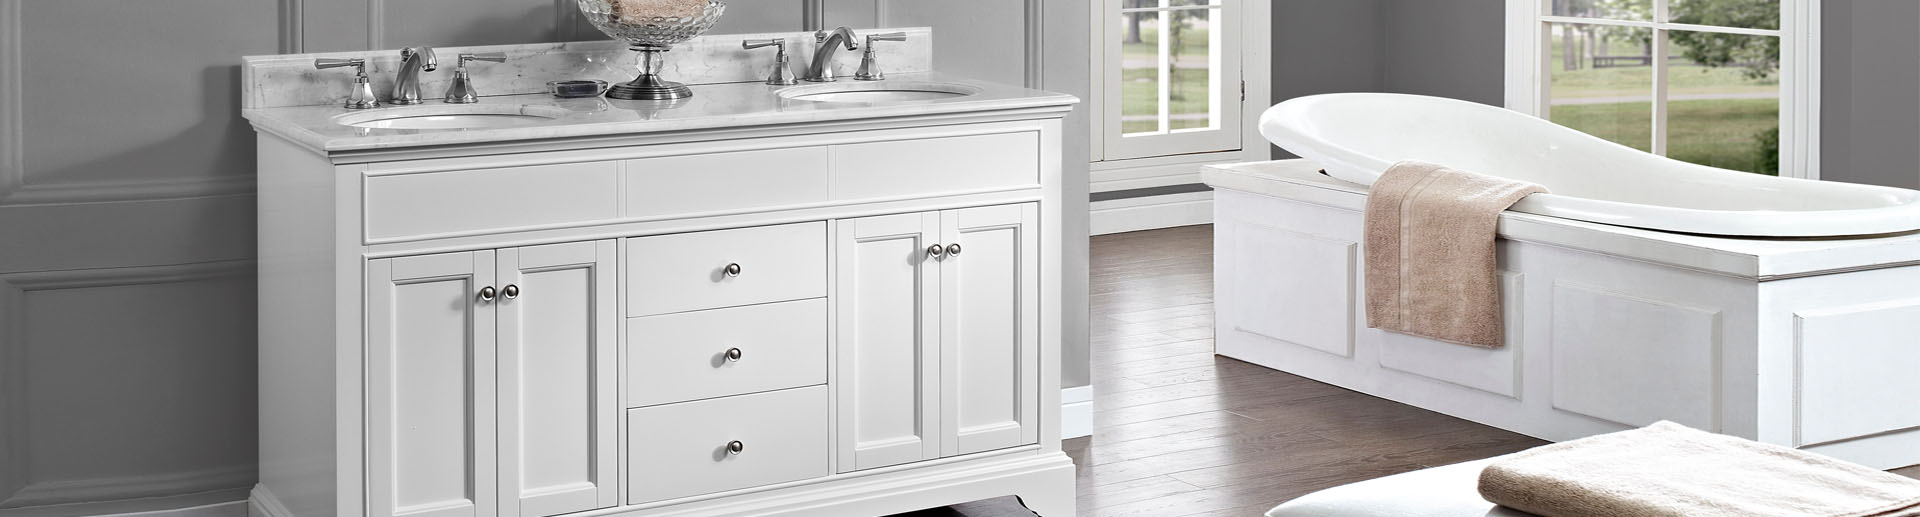 vanities_pageheader_1920